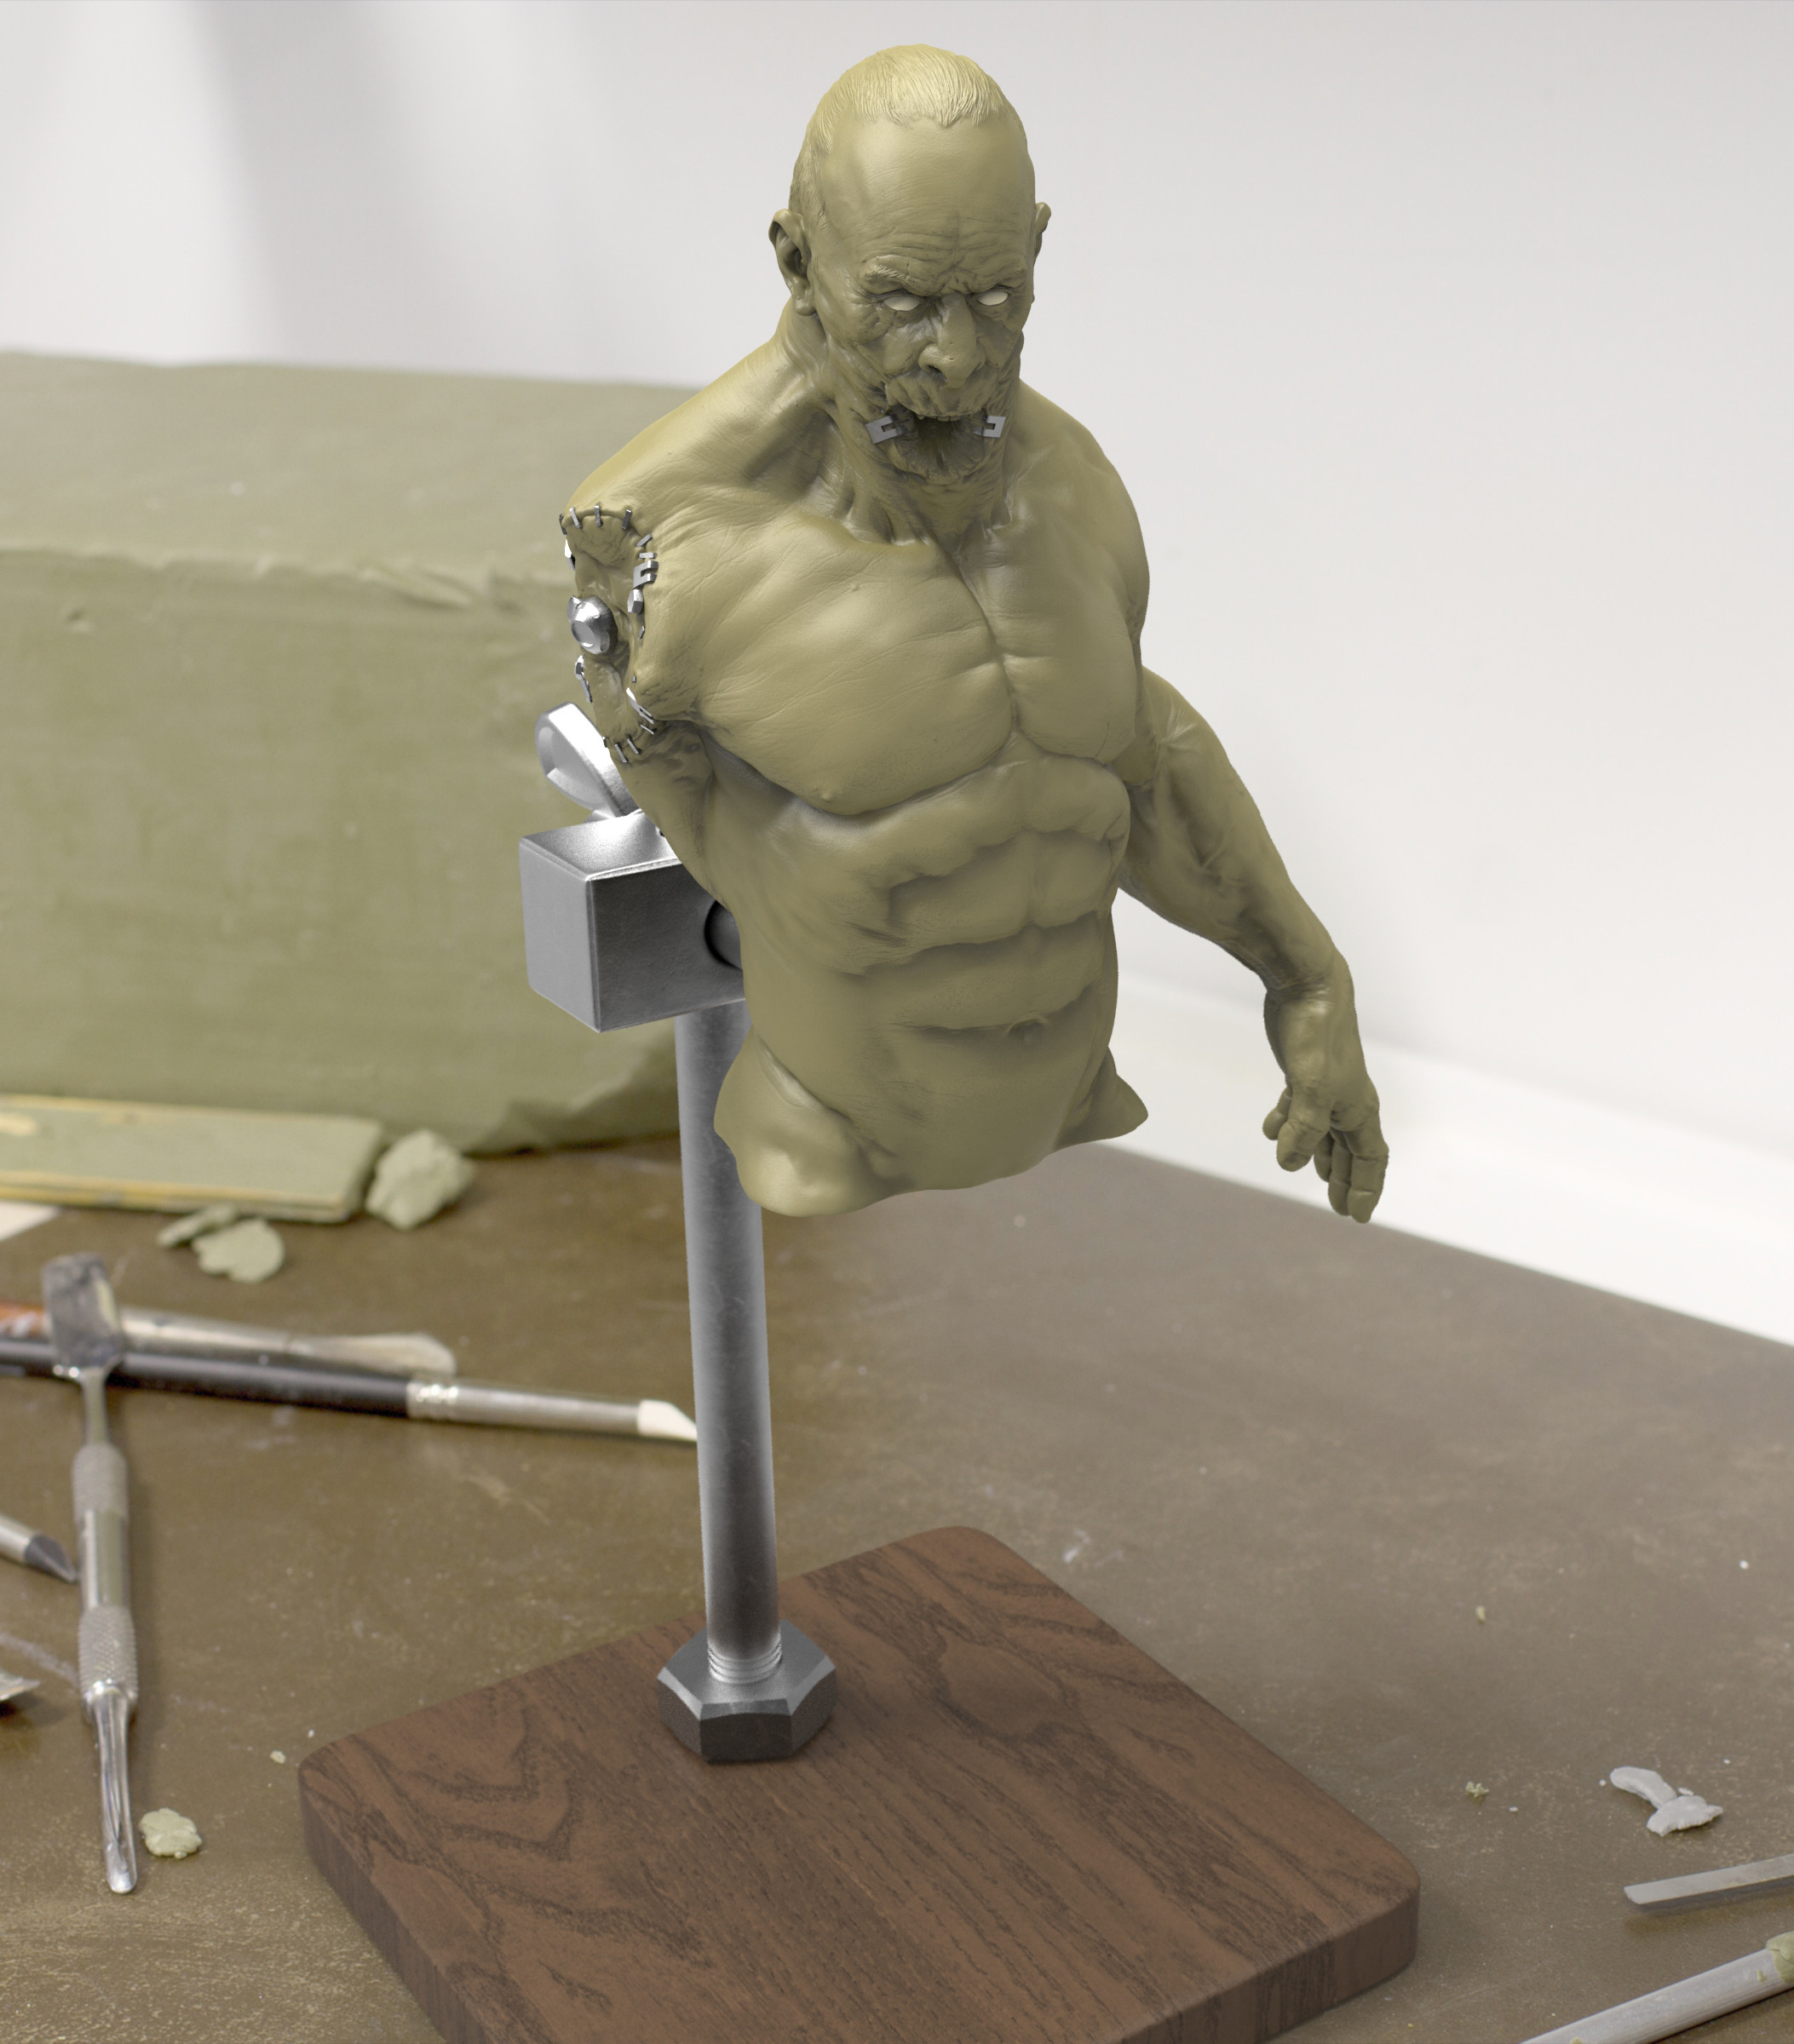 custom base modeled in zbrush; see the video further down for the render breakdown and creation